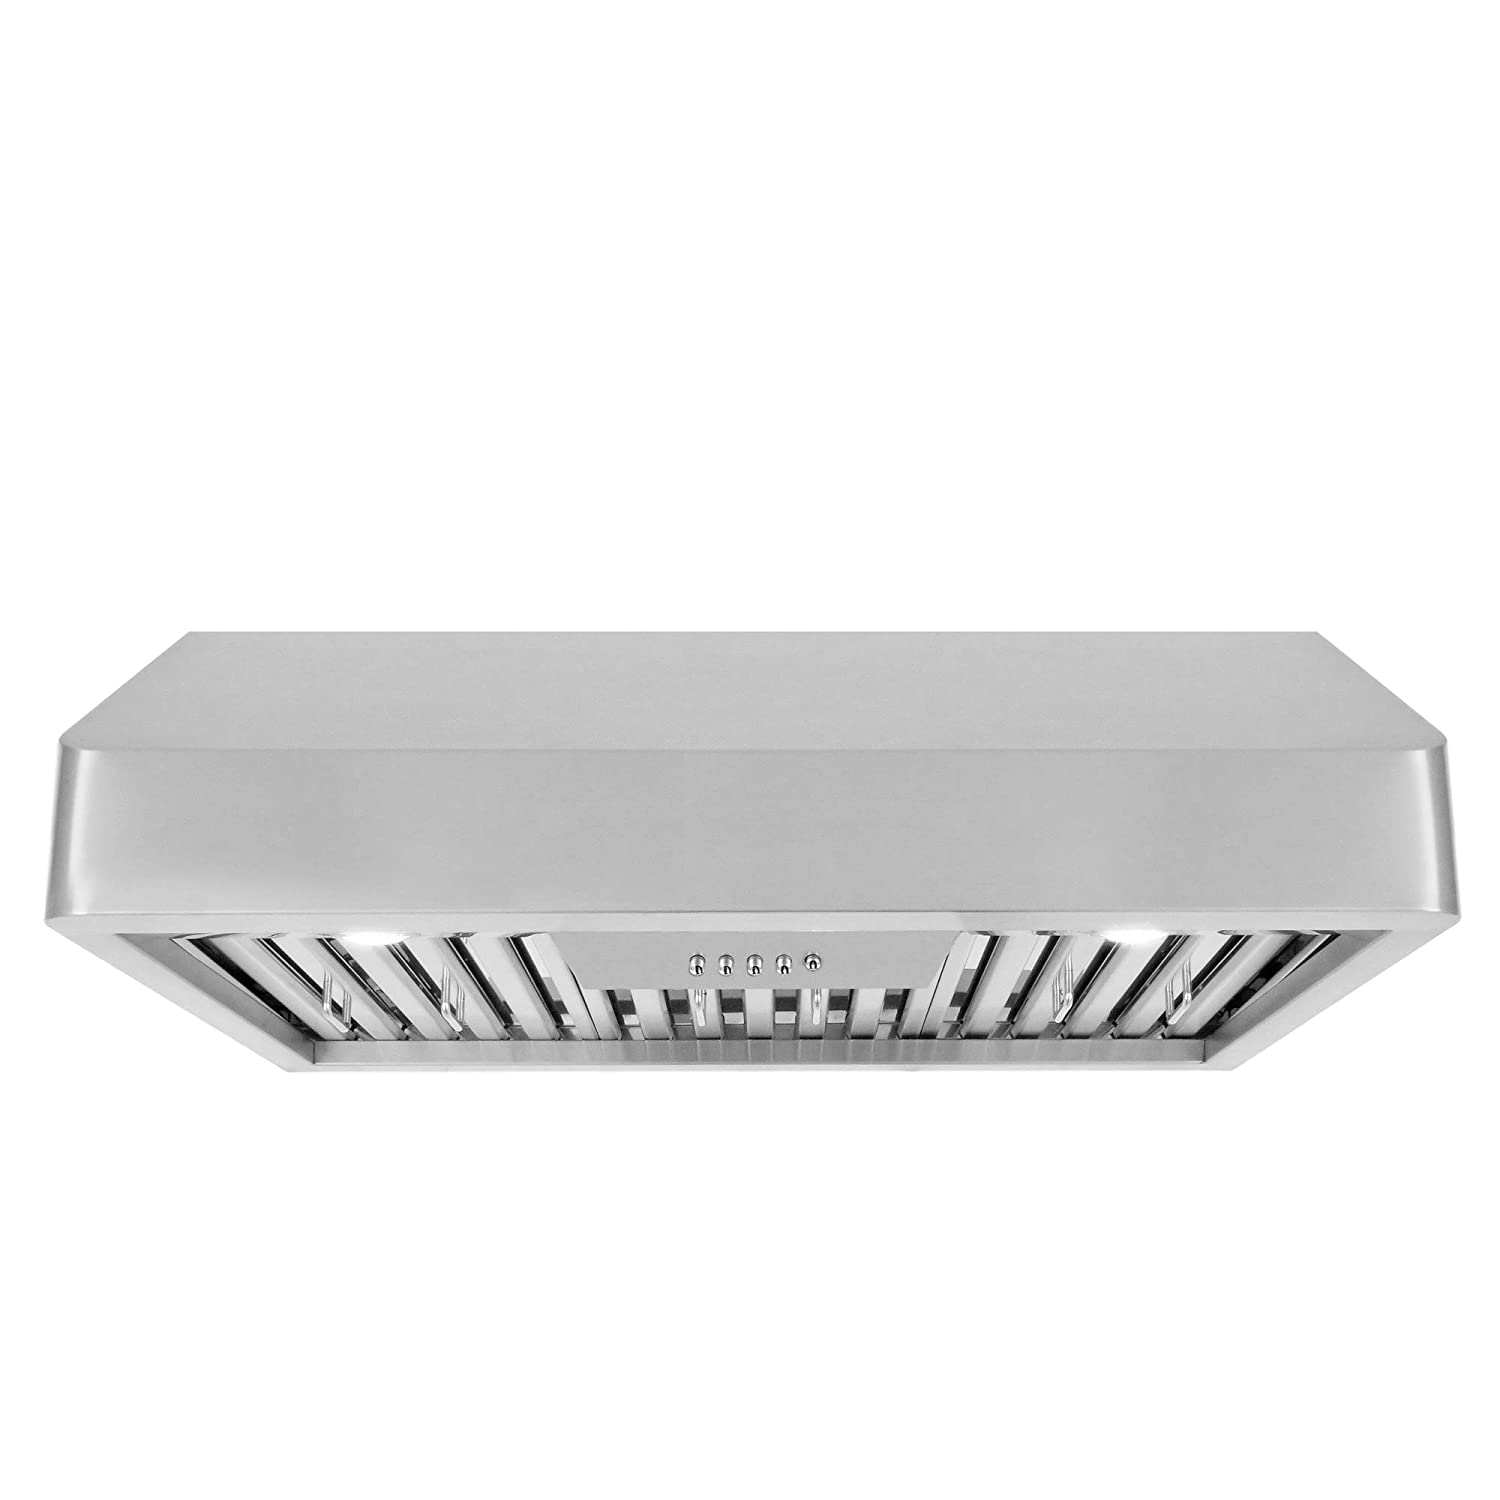 Cosmo QB75 30-in Under-Cabinet Range-Hood 900-CFM | Ducted/Ductless Convertible Duct, Kitchen Stove Vent with LED Light, 3 Speed Exhaust Fan, Dishwasher-Safe Permanent Filter (Stainless Steel)